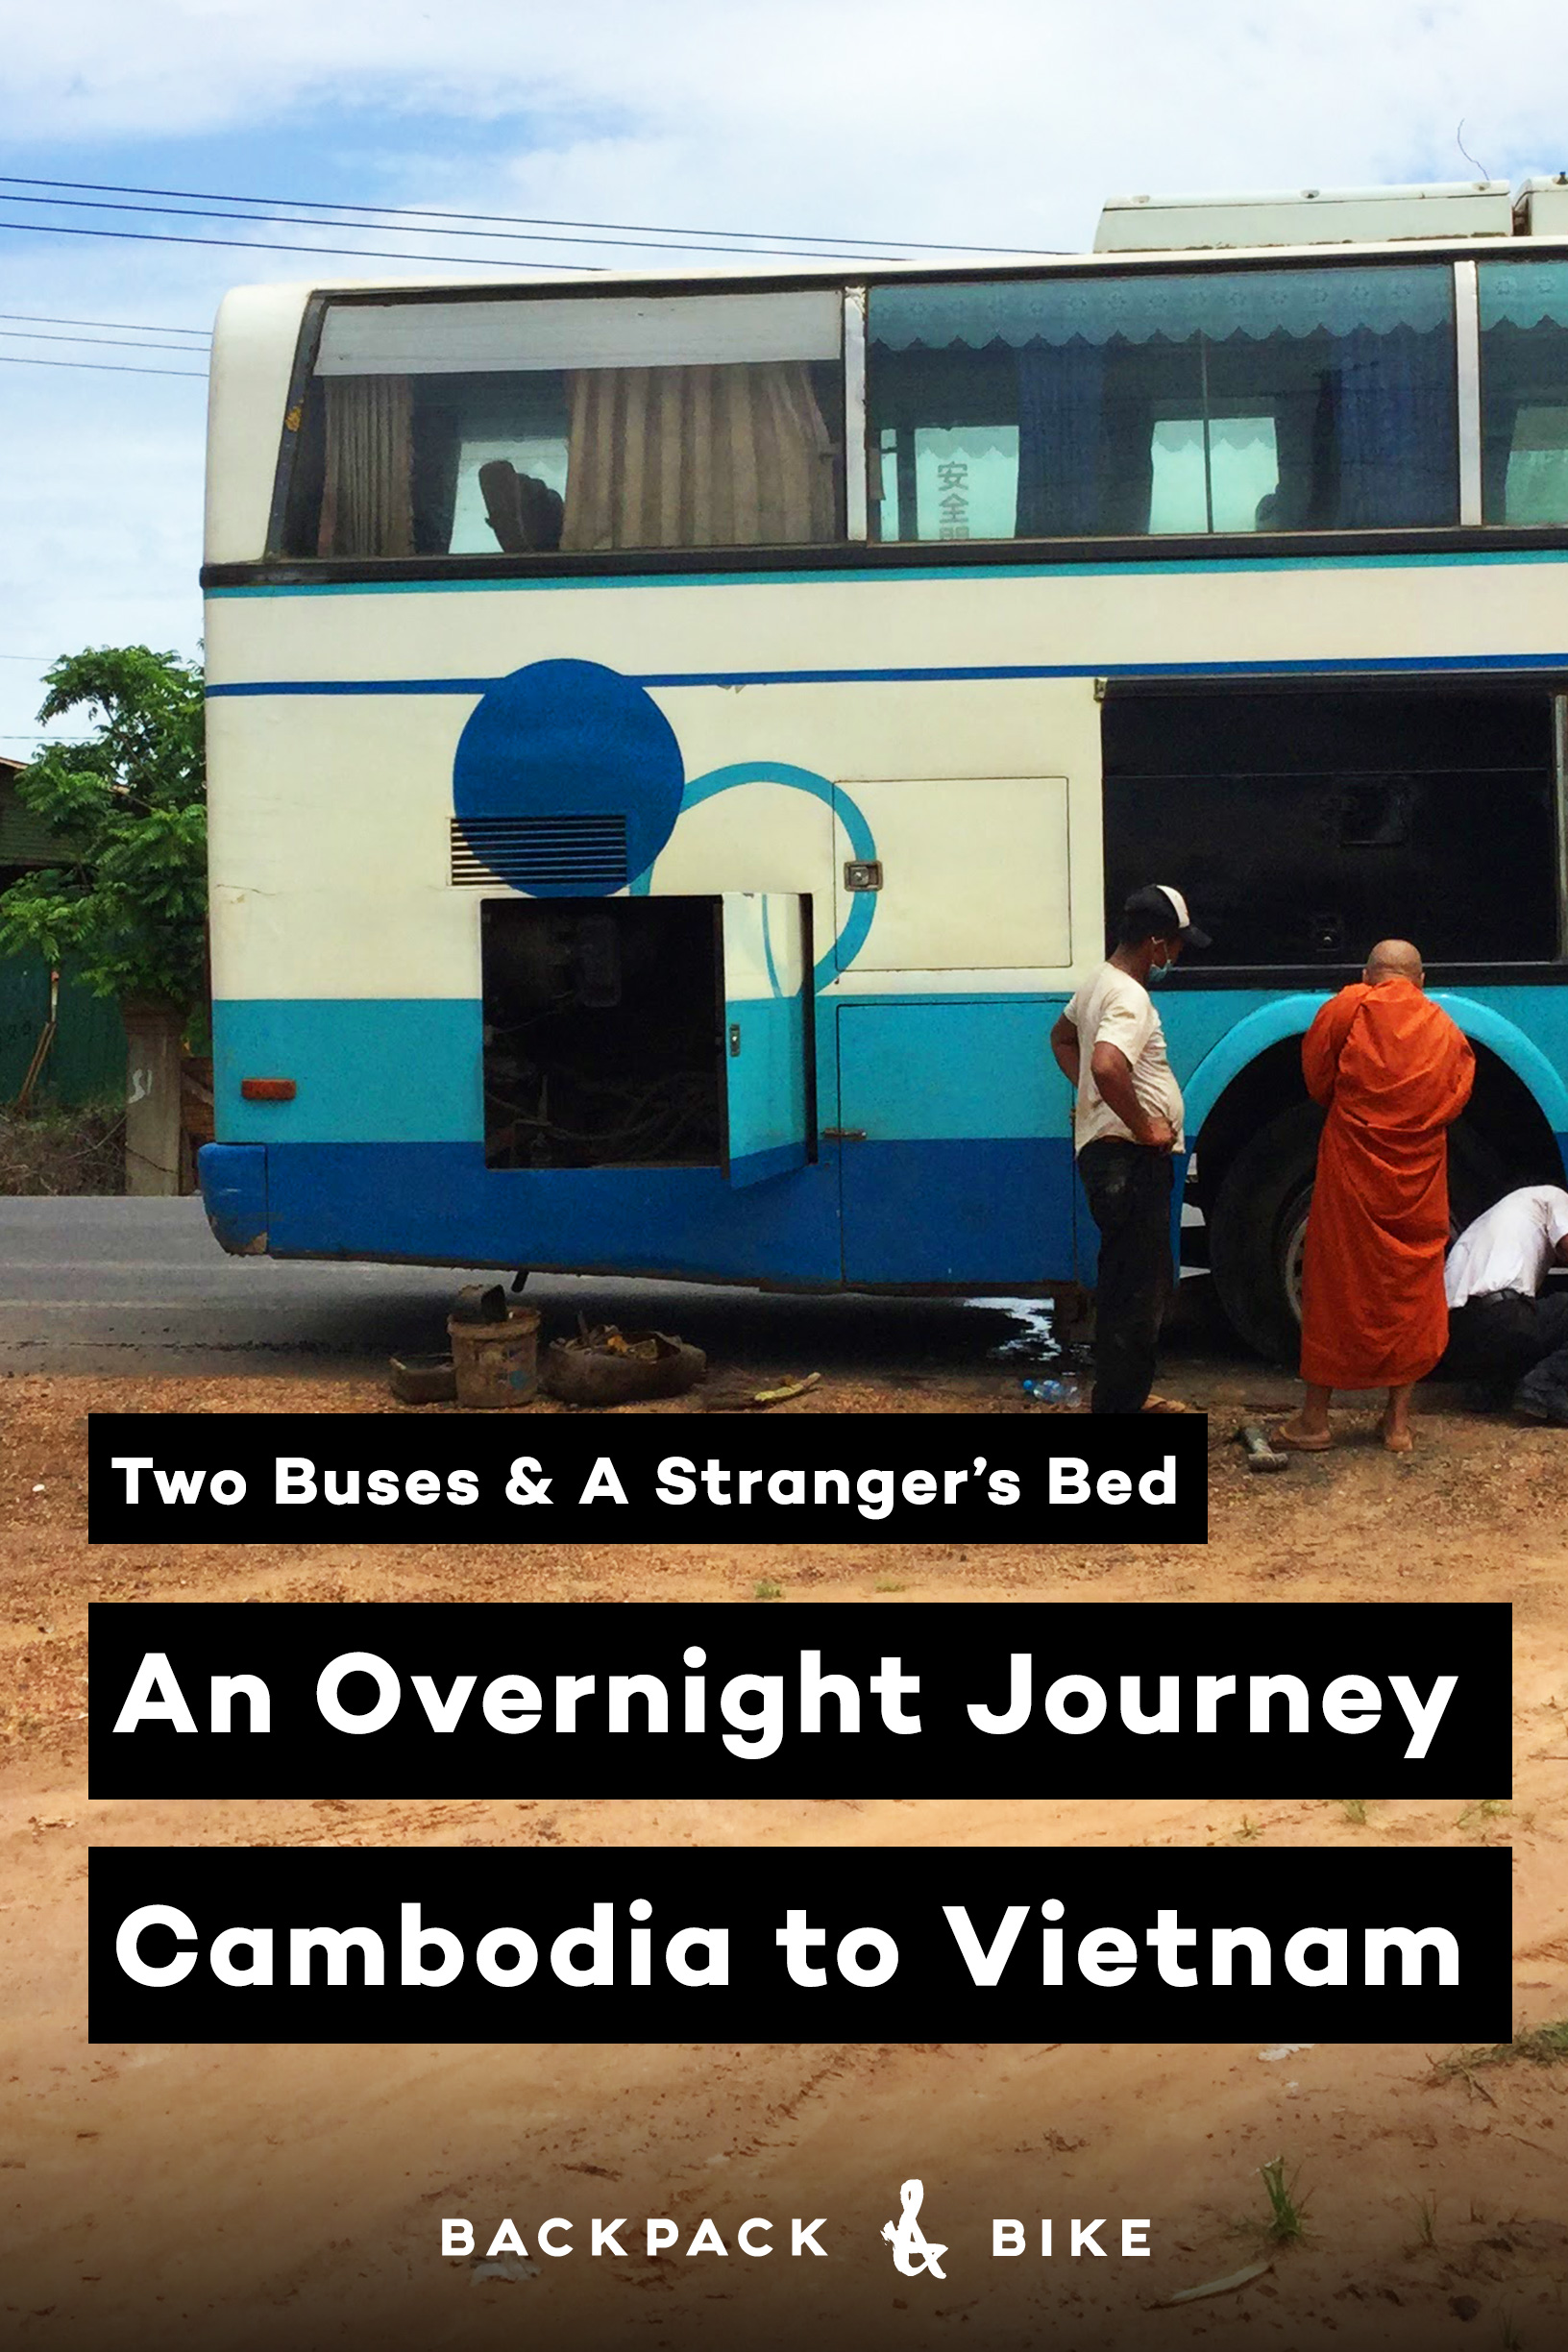 An Overnight Journey Cambodia to Vietnam: Two buses and a Stranger's Bed - Backpack & Bike